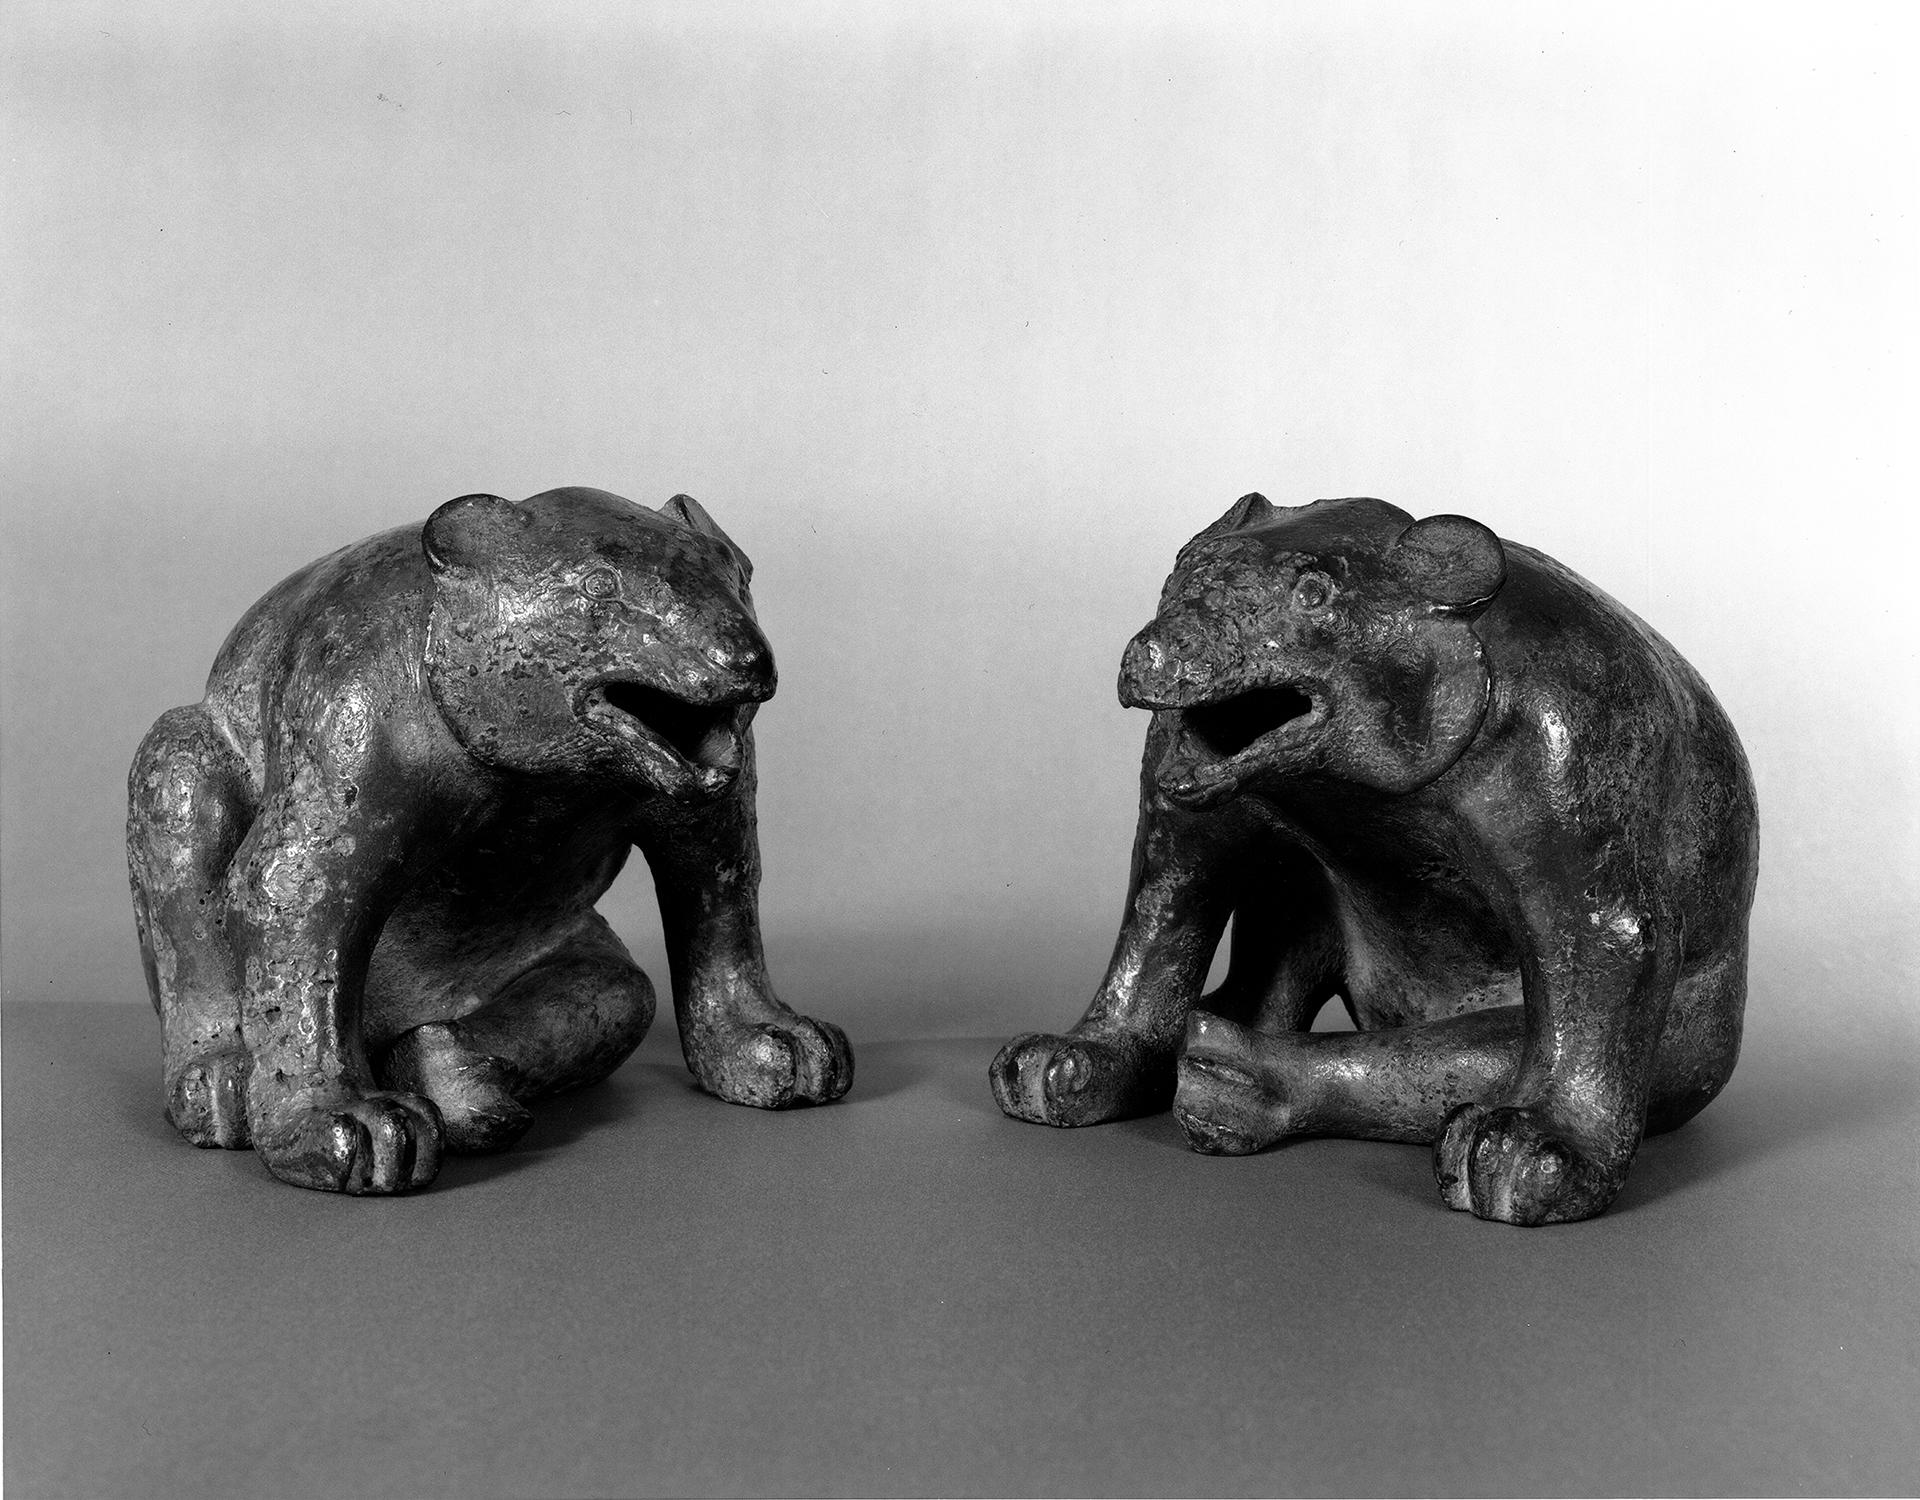 Chinese, Western Han dynasty, Mat Weights: Bears, about 206 BC - AD 9. Bronze with traces of gilding, height: 15.5 cm (6 1/8 in.) Isabella Stewart Gardner Museum, Boston (S15w15.1-2).